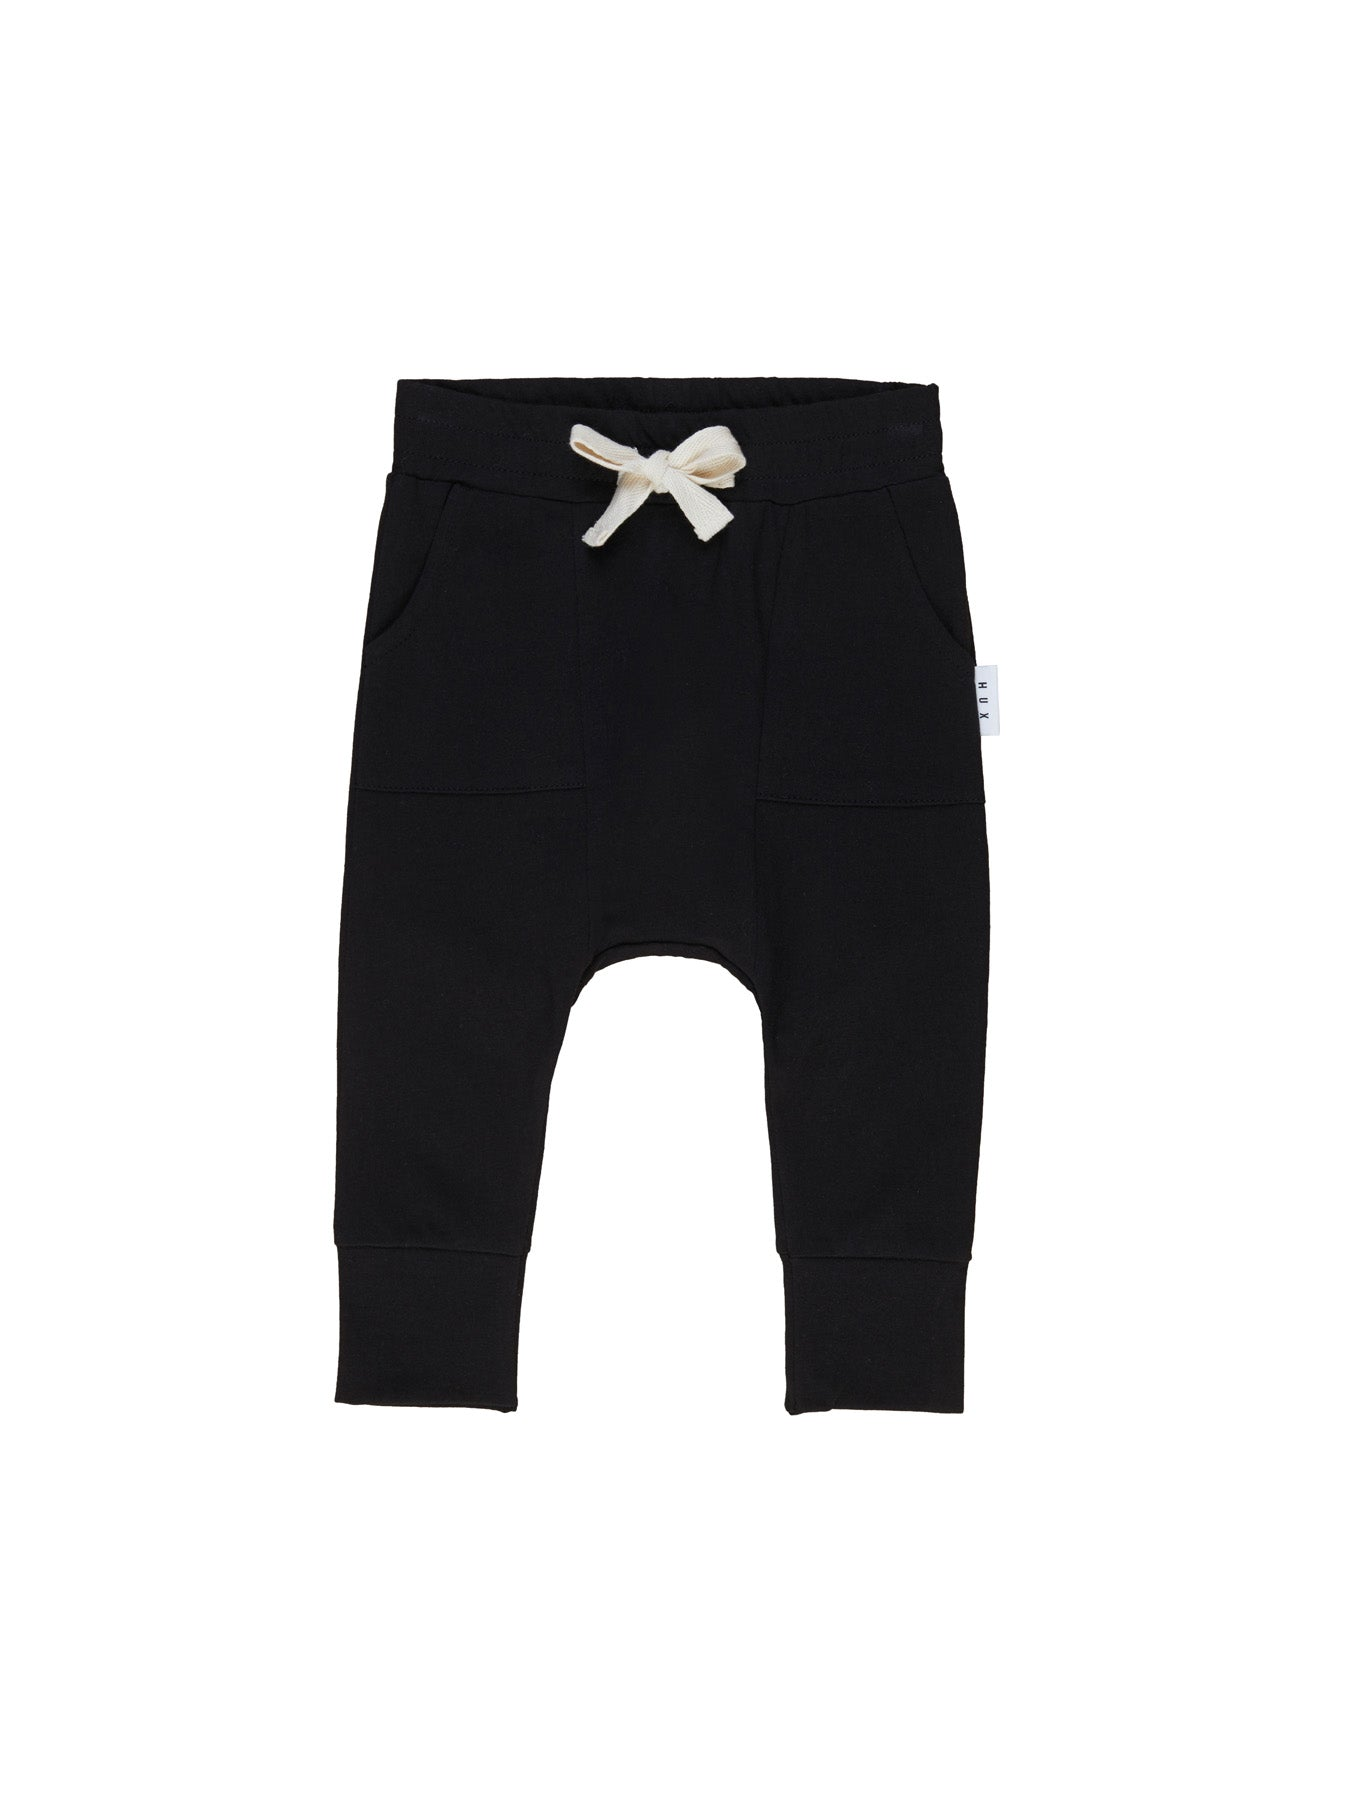 Pocket Drop Crotch Pant - Black